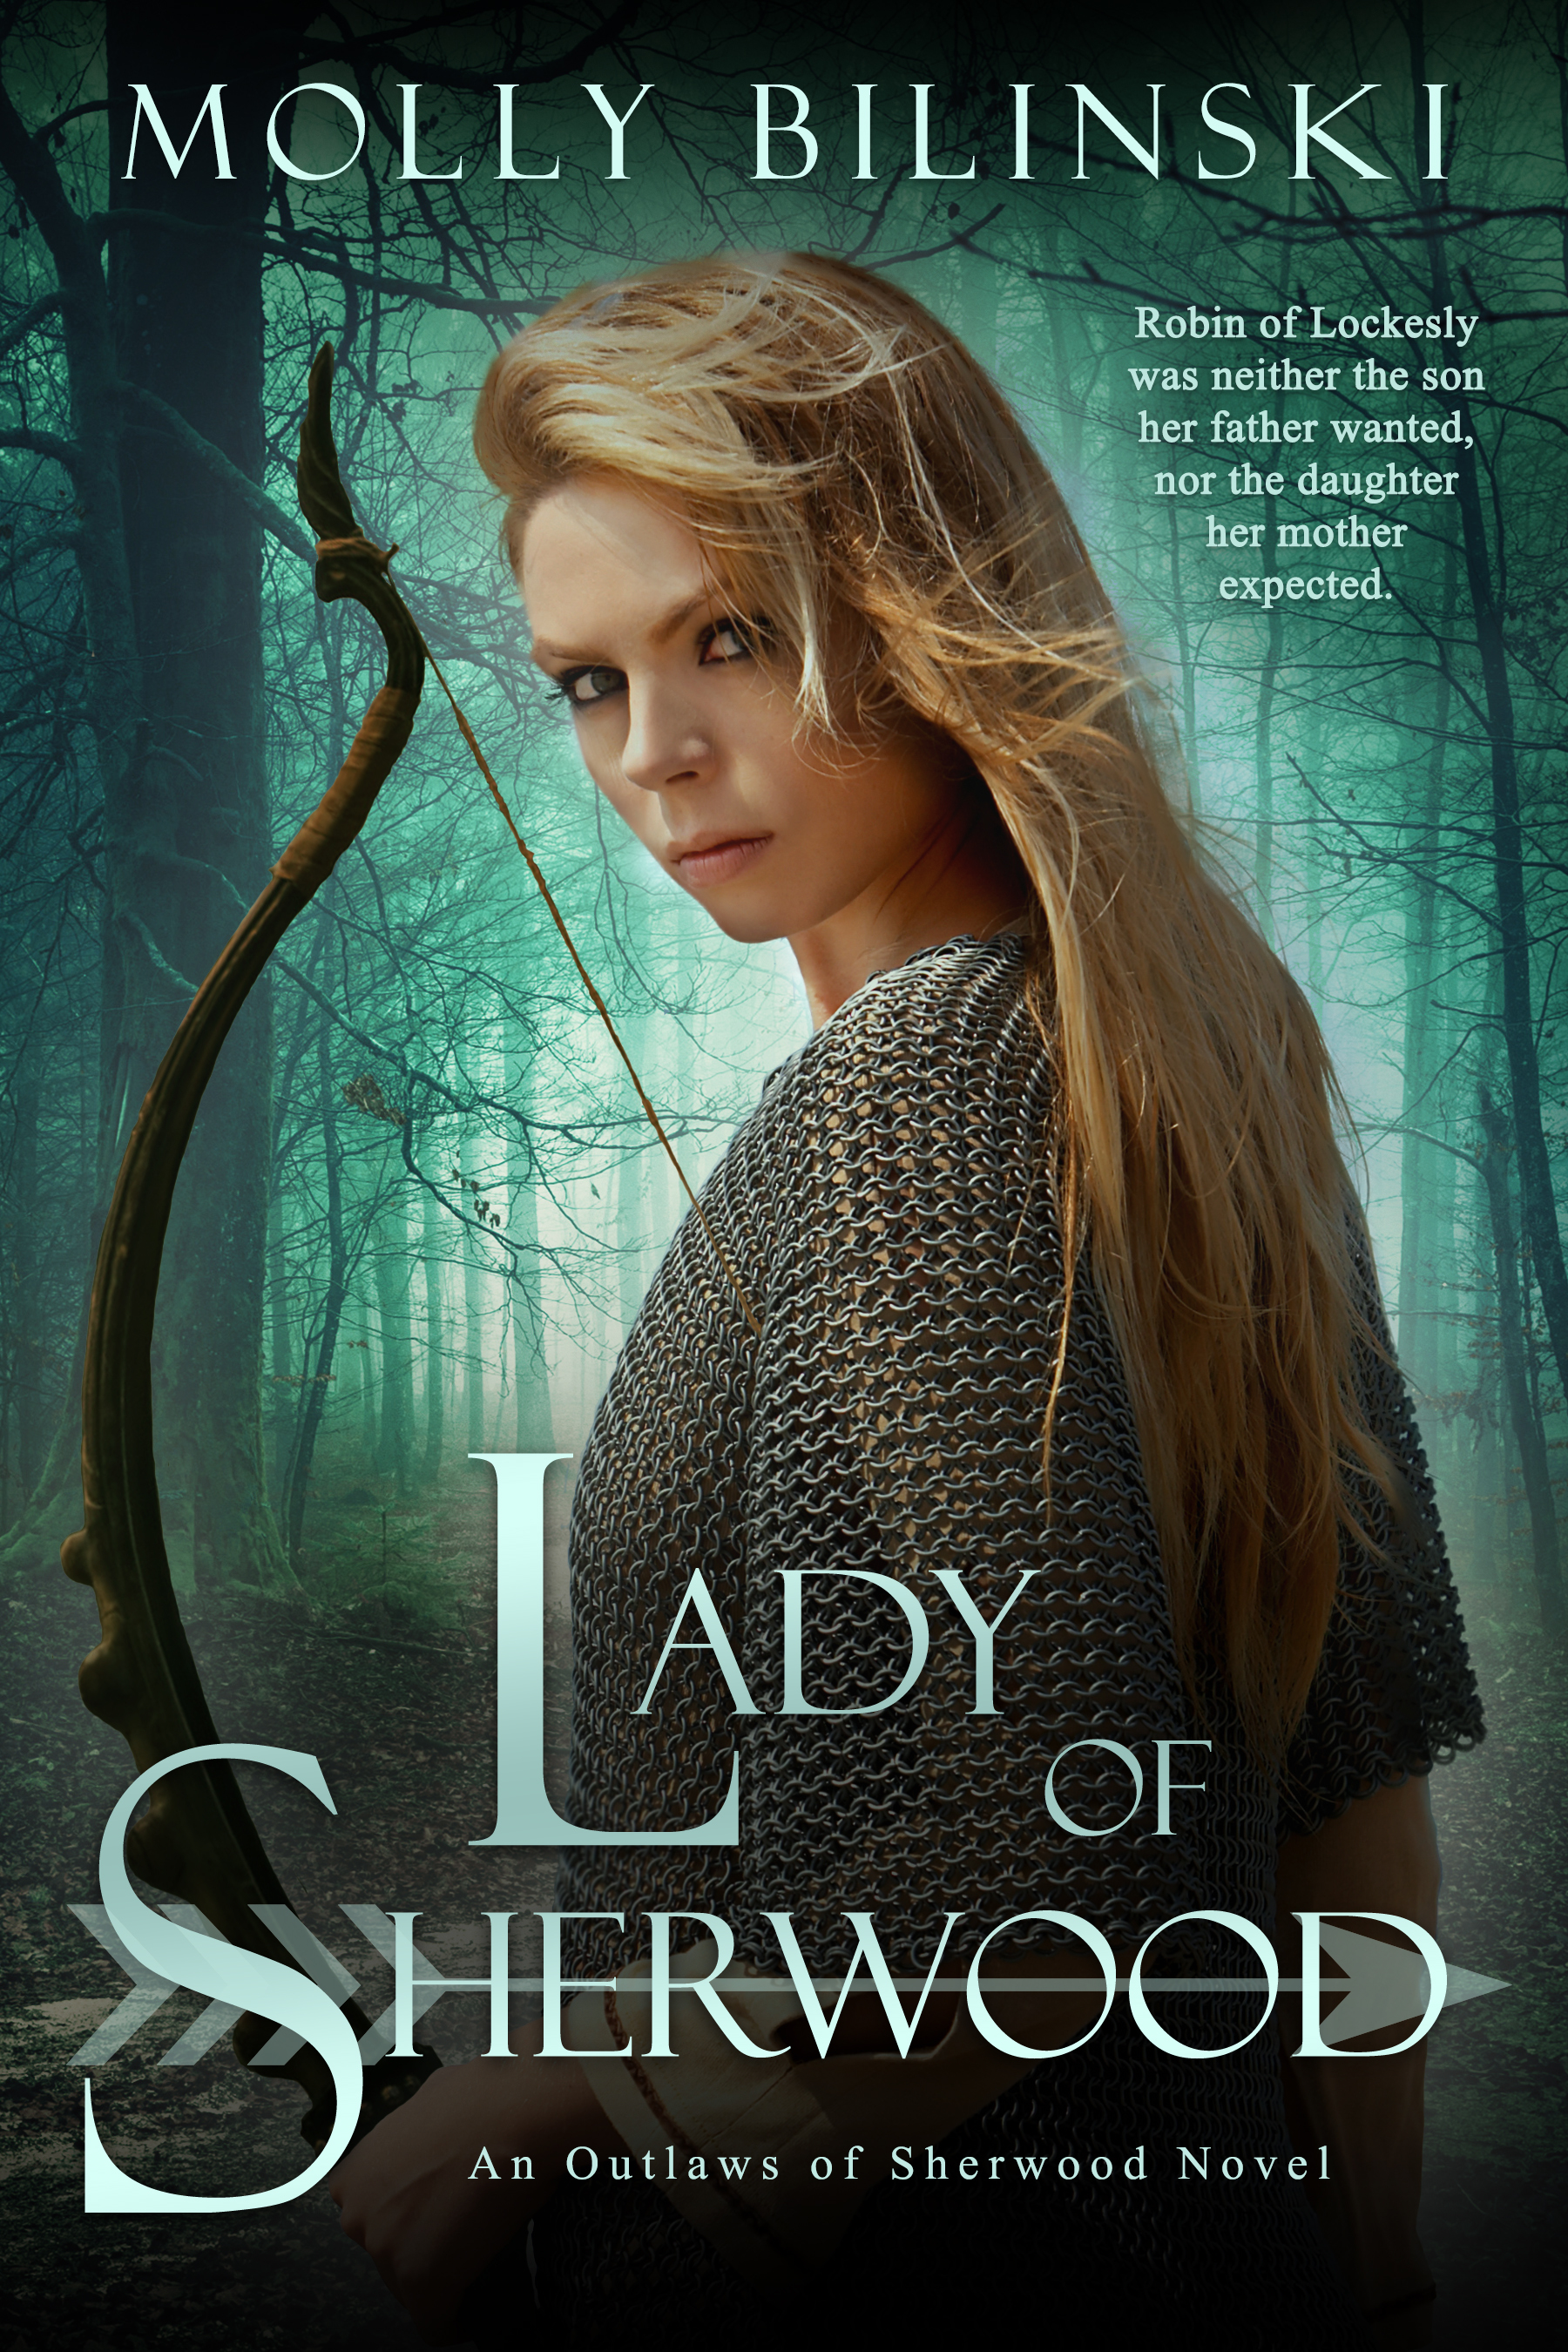 Lady of Sherwood